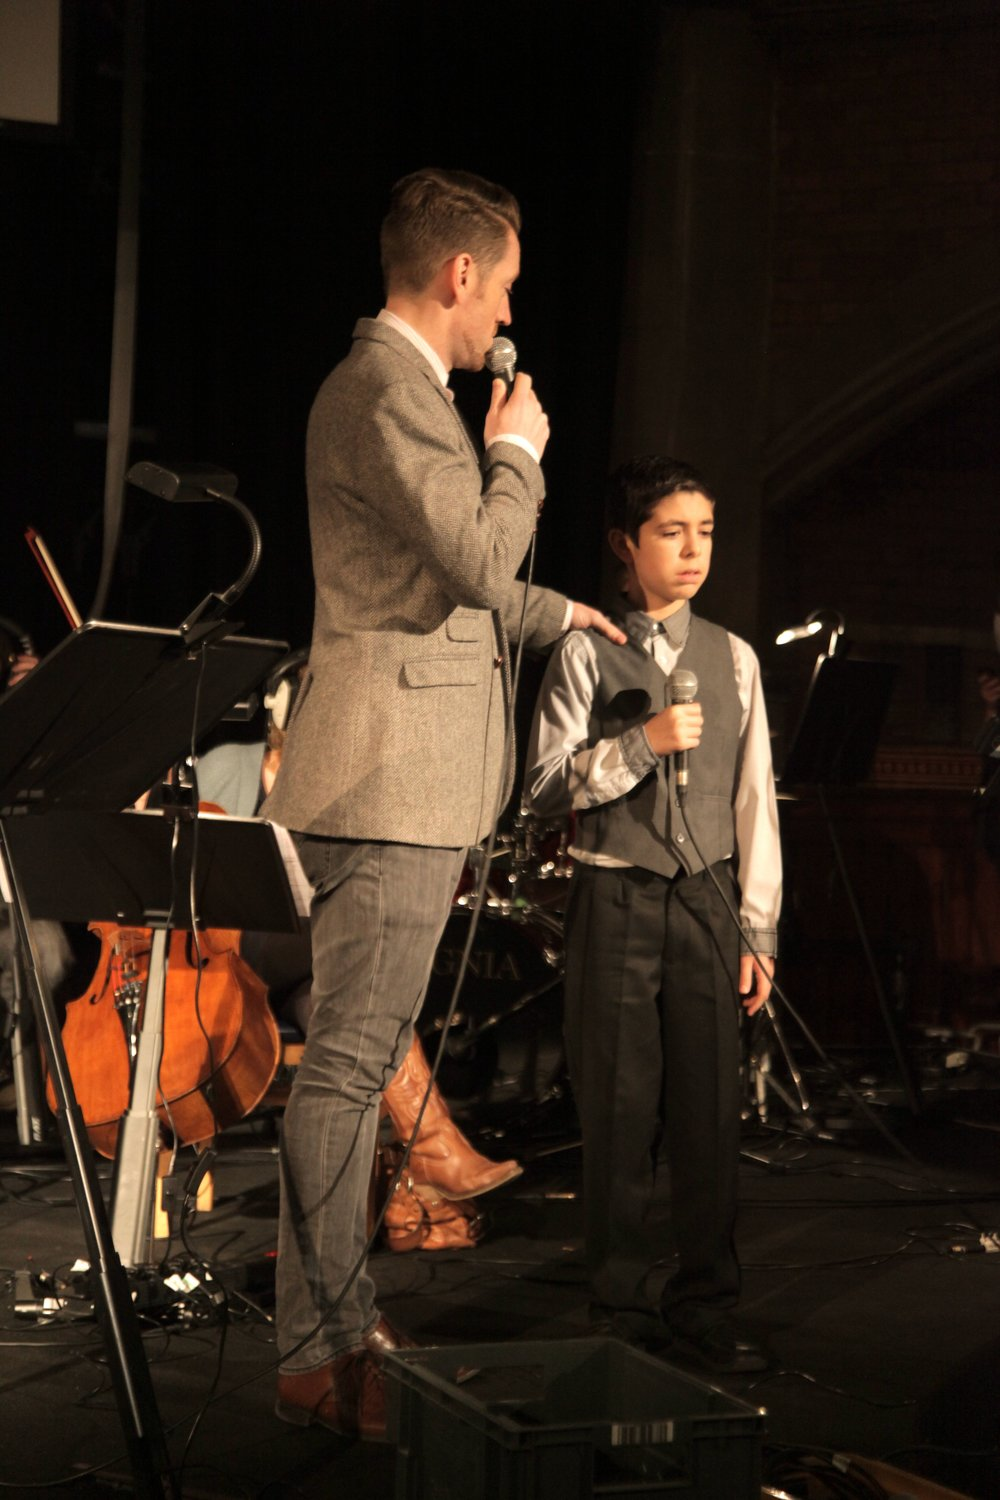 Robert Cameron Shaw and Ricardo Costa Bullita (boy) at Union Chapel for the premiere of Life from Light (2012)